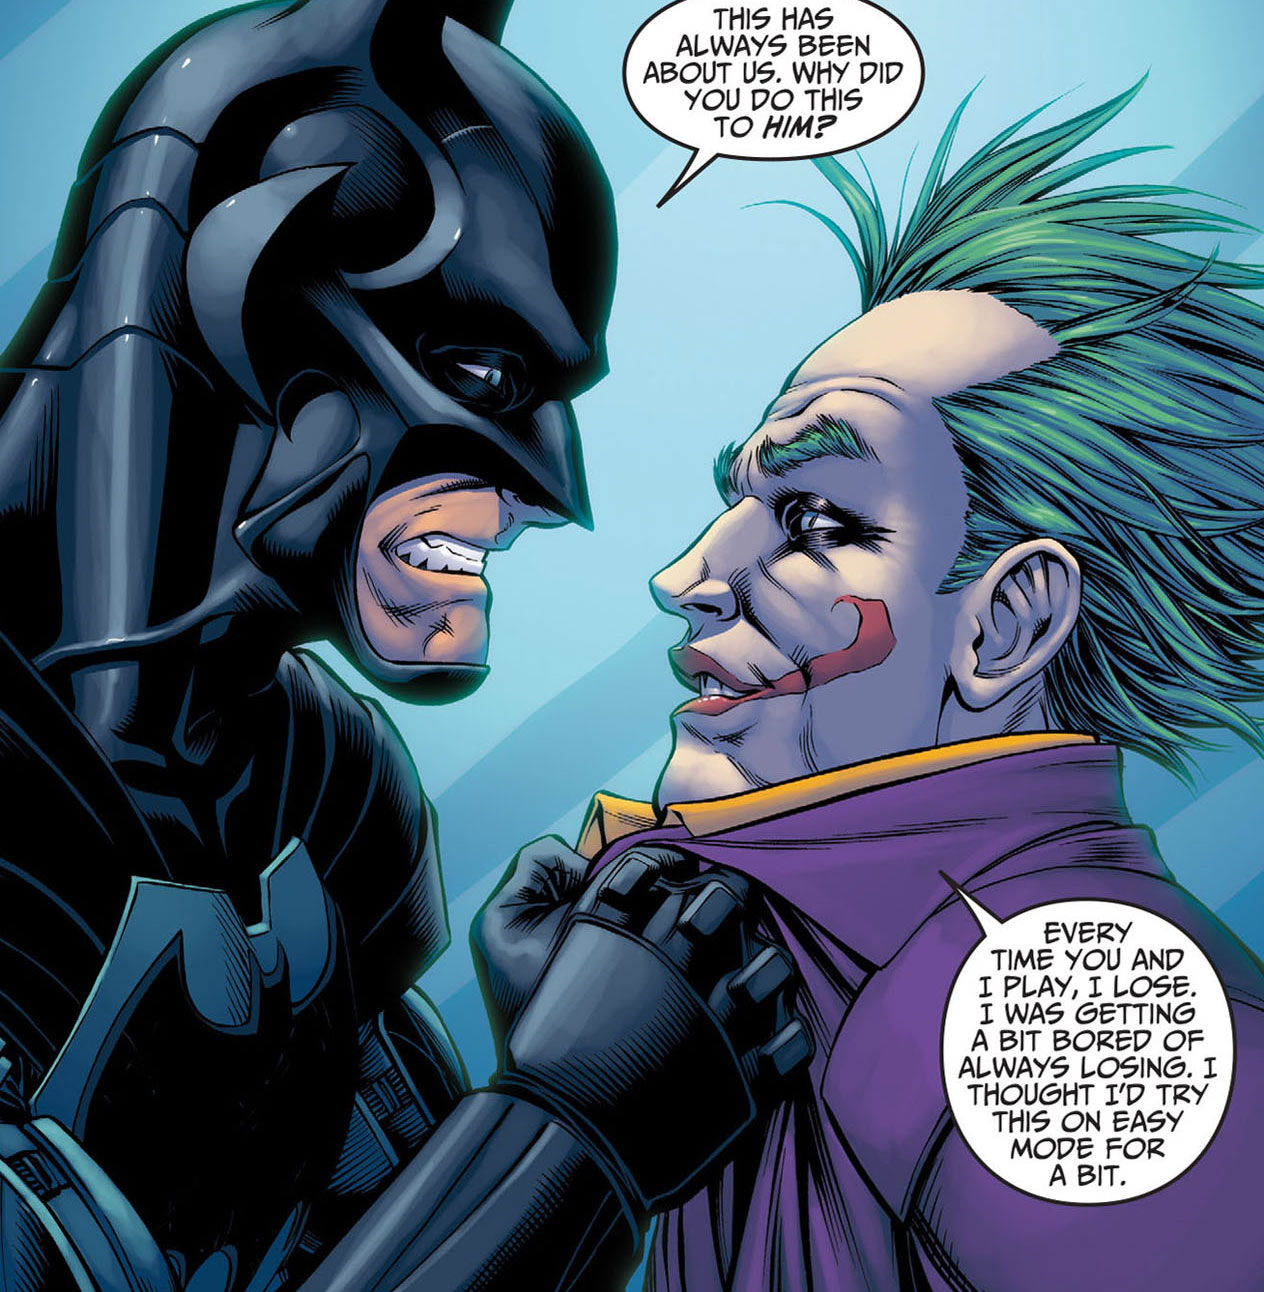 A GEEK DADDY: DC COMICS HAS DOUBLE SUCCESS WITH ITS VIDEO ...